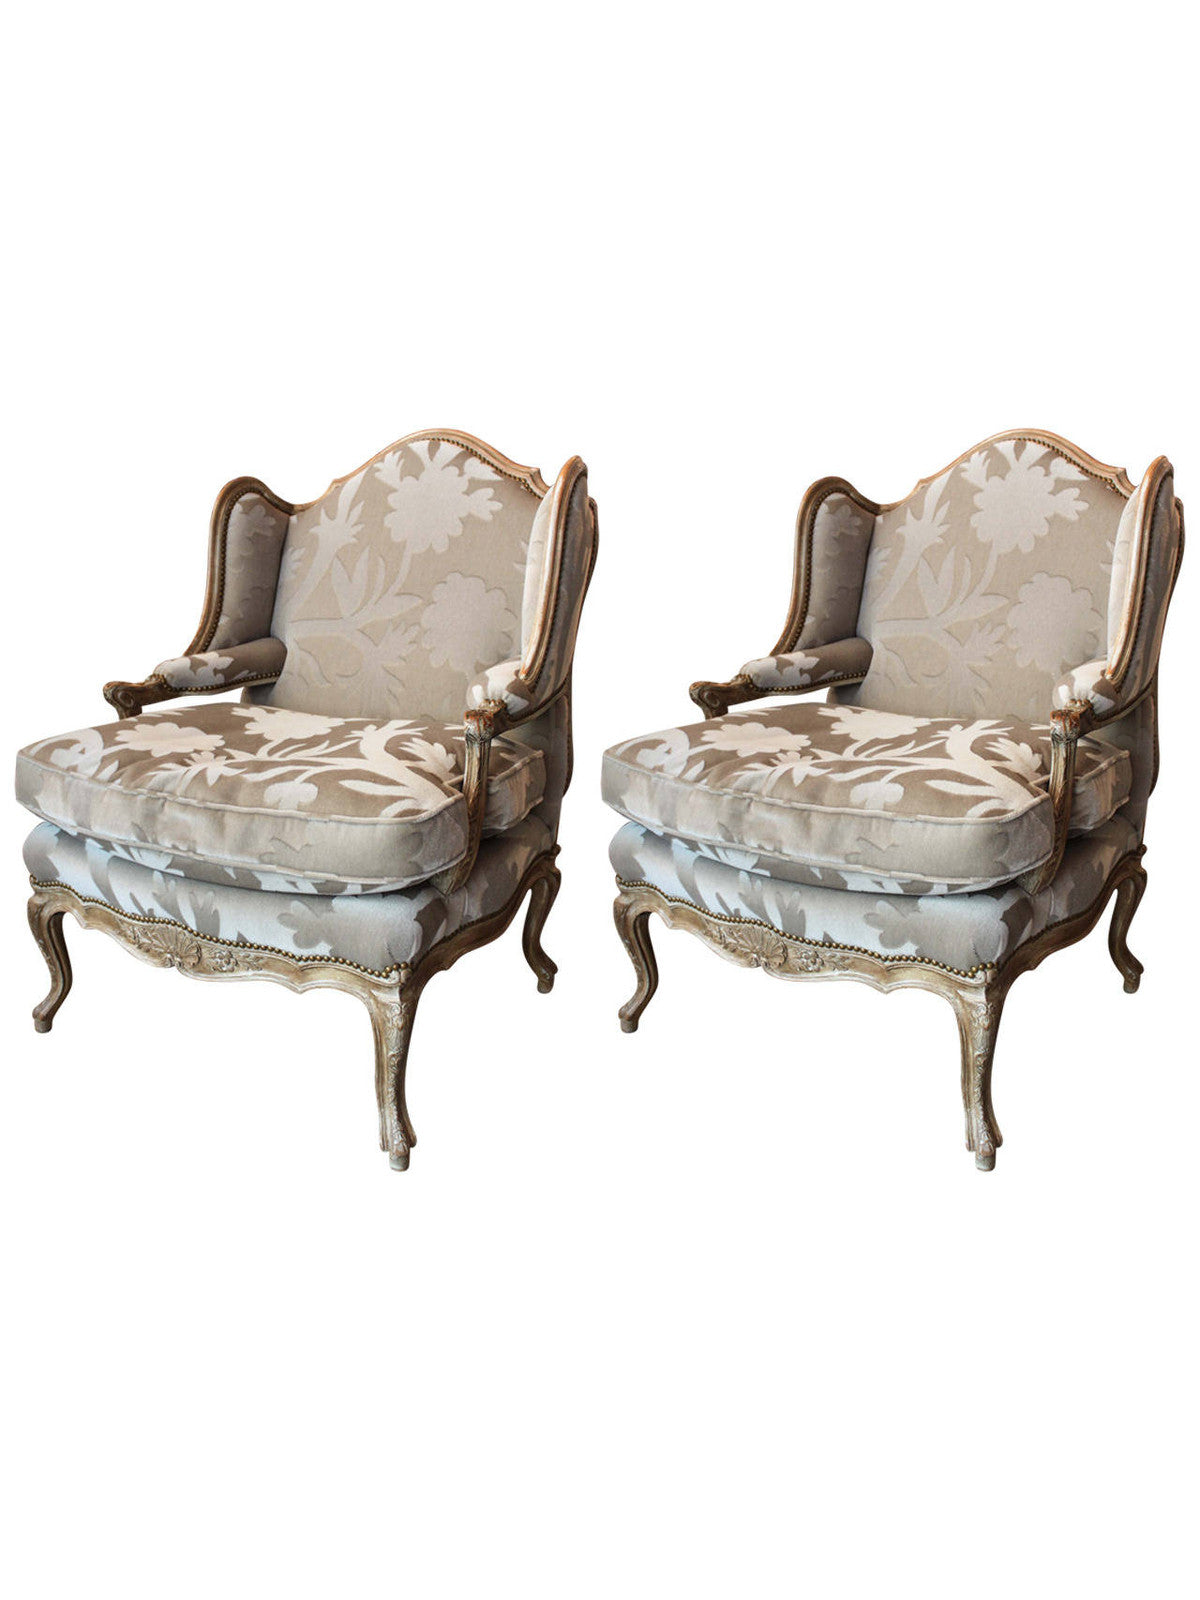 Antique bergere chair - Antique French Bergere Chairs Pair